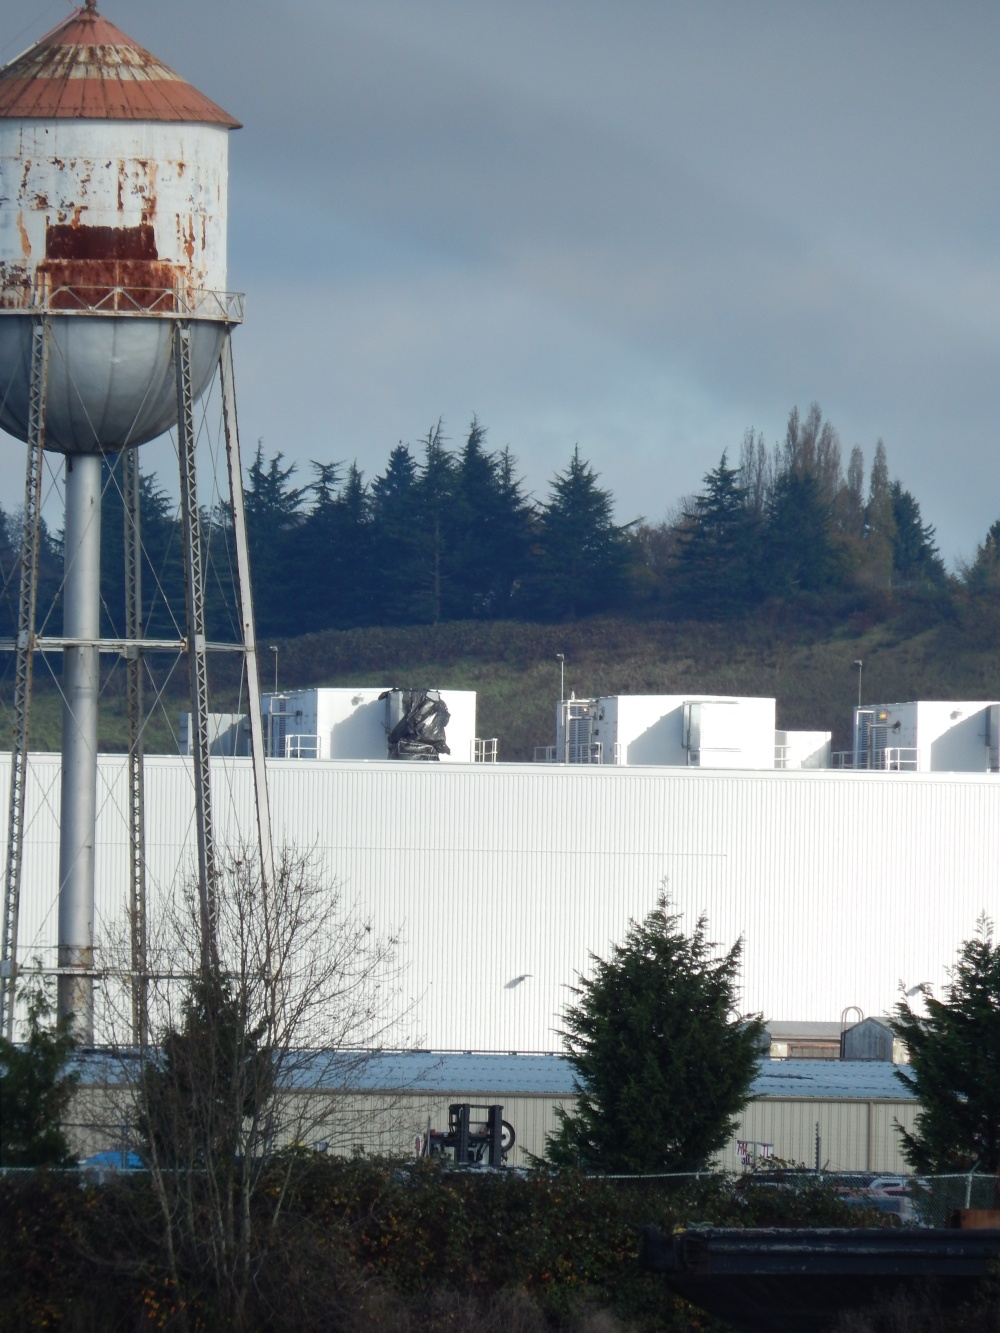 Old Water Tower - could this be from Kenworth Factory?